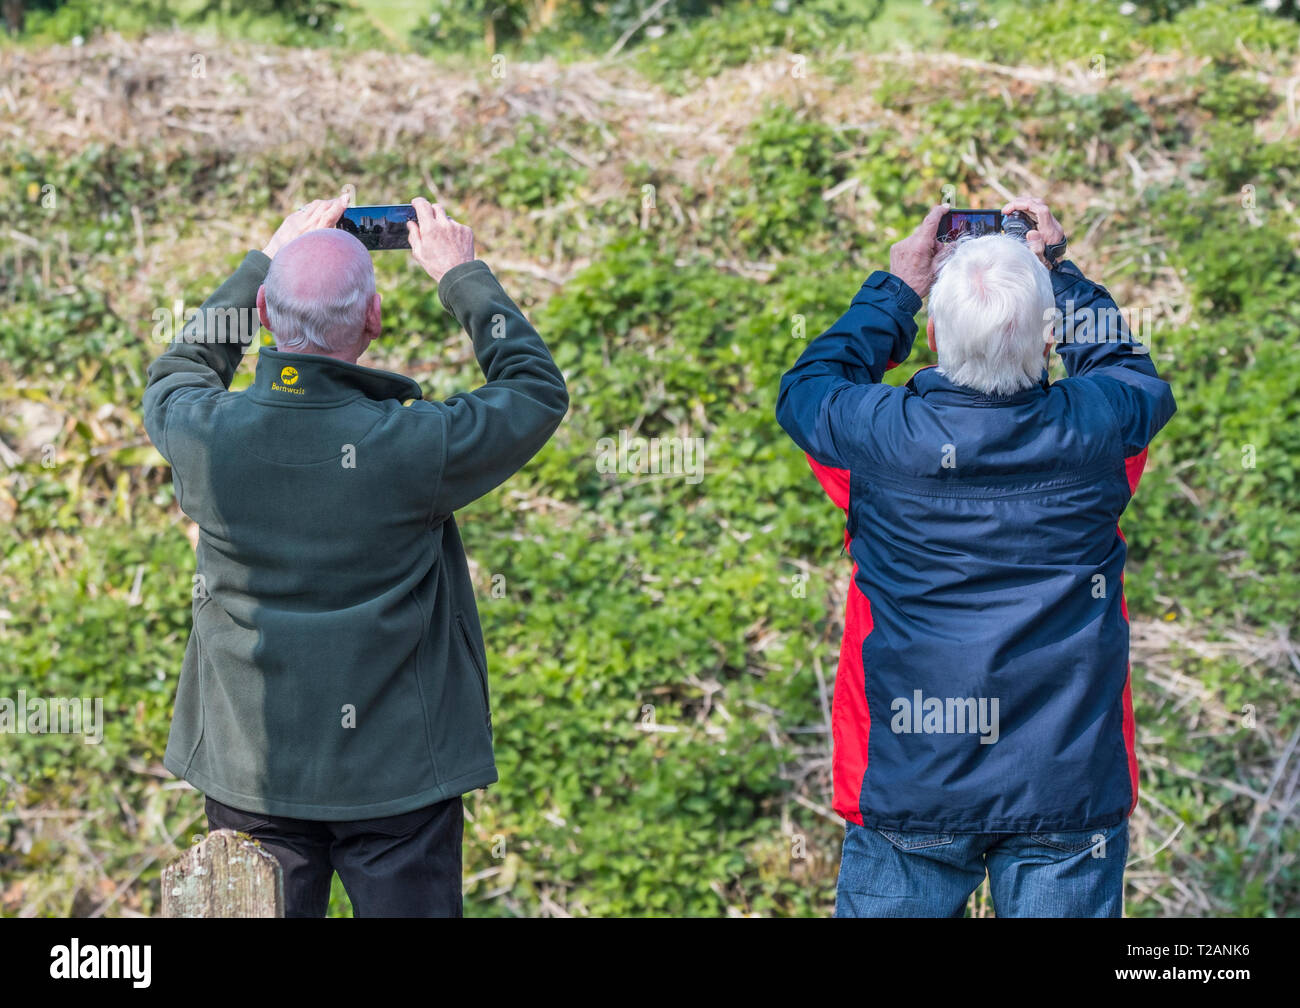 Pair of foreign tourists holding up smartphone cameras taking photos of a landmark in England, UK. Taken from behind. - Stock Image